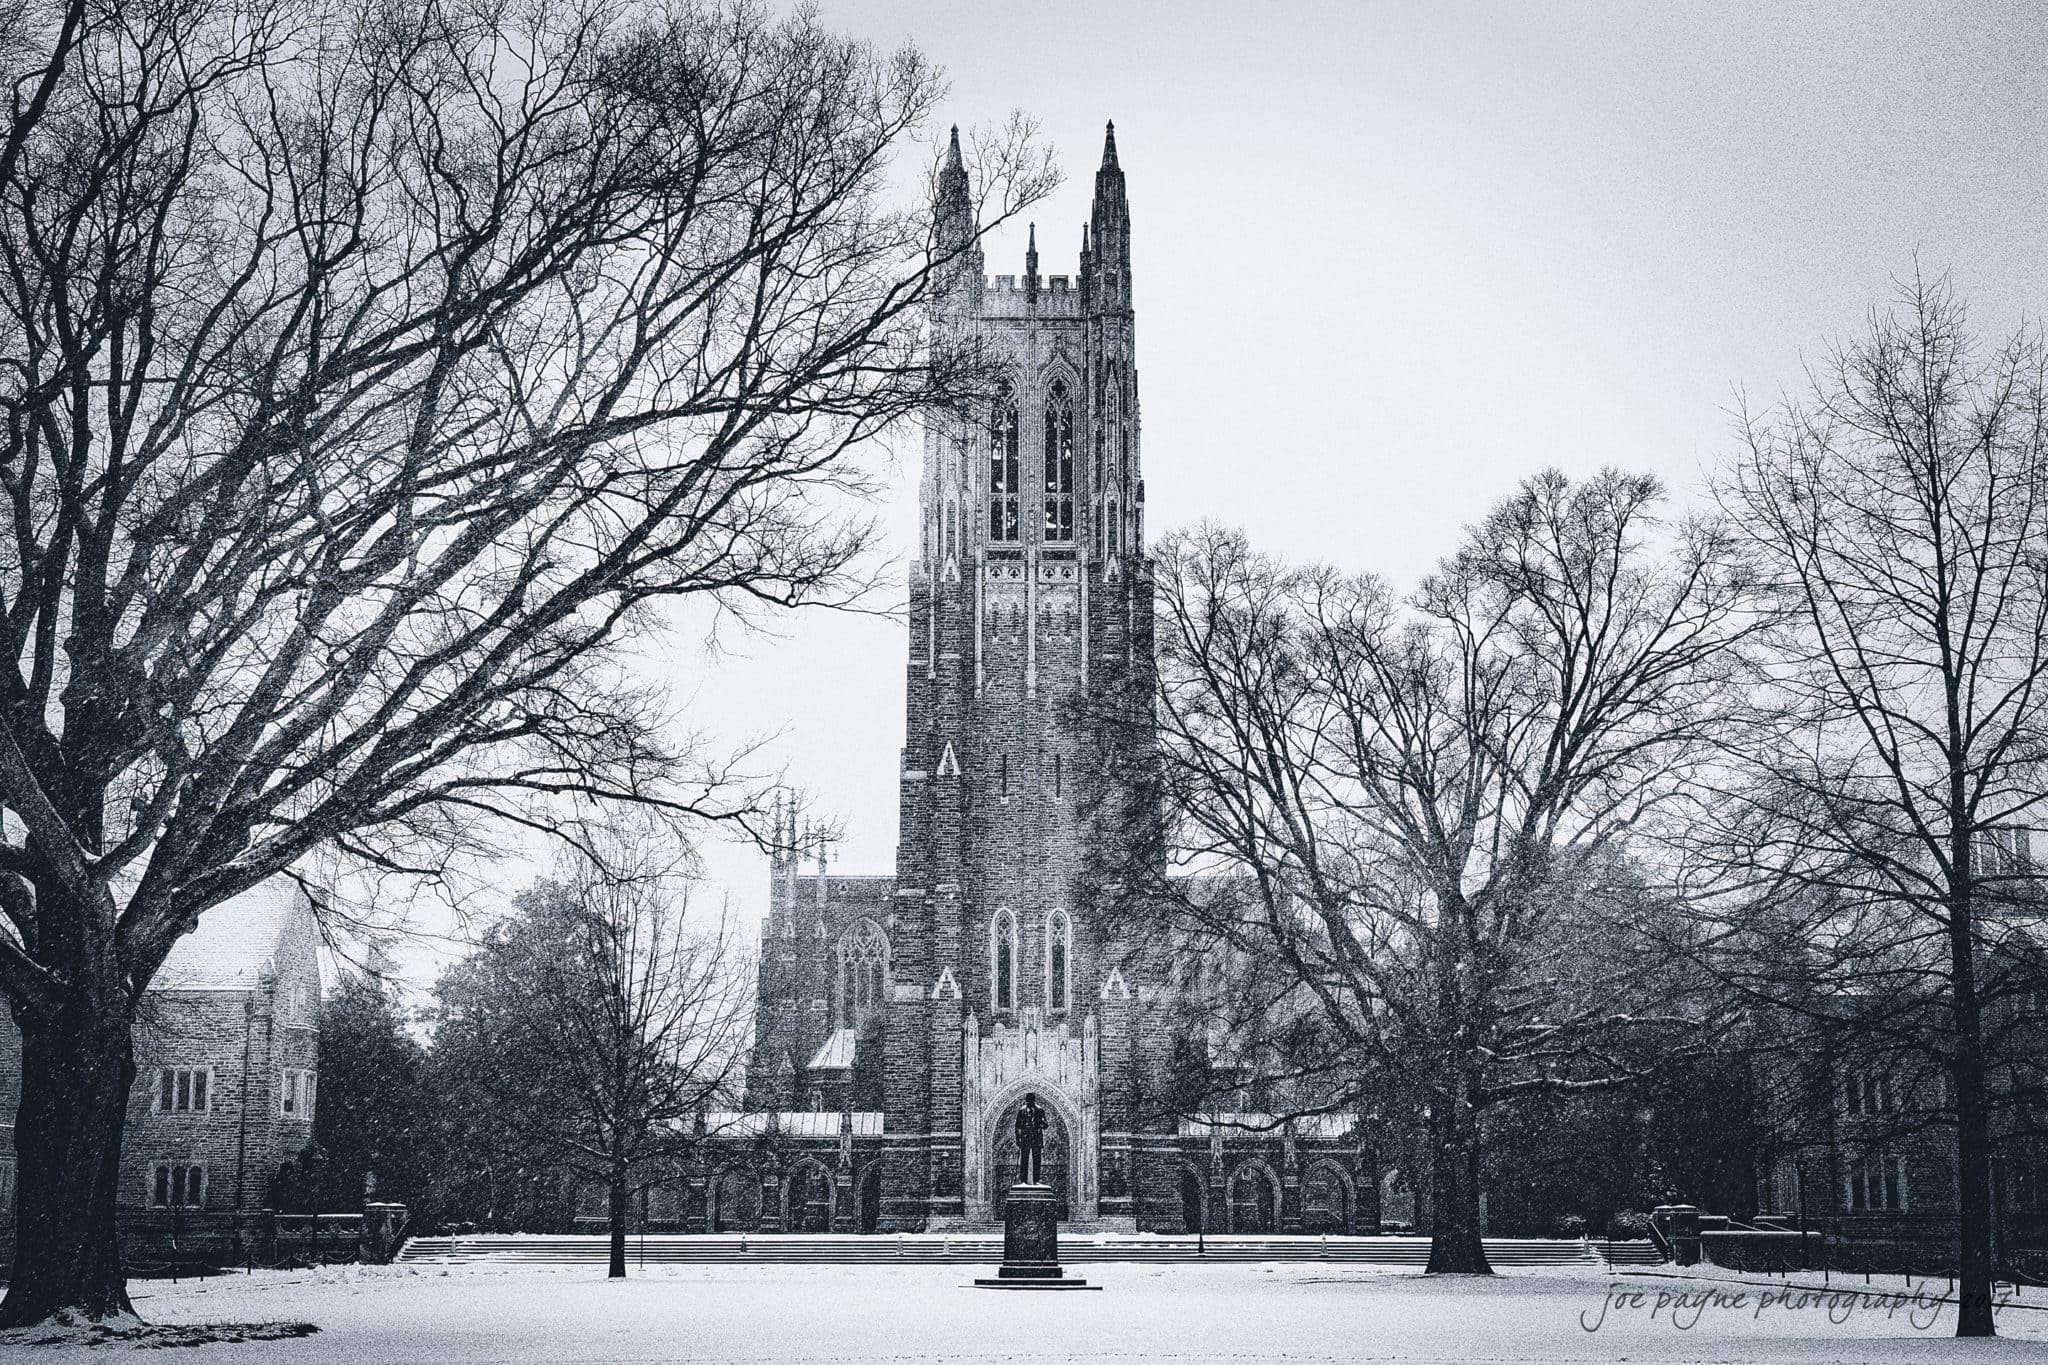 Snowy Duke chapel wedding photography - Duke Chapel in the snow